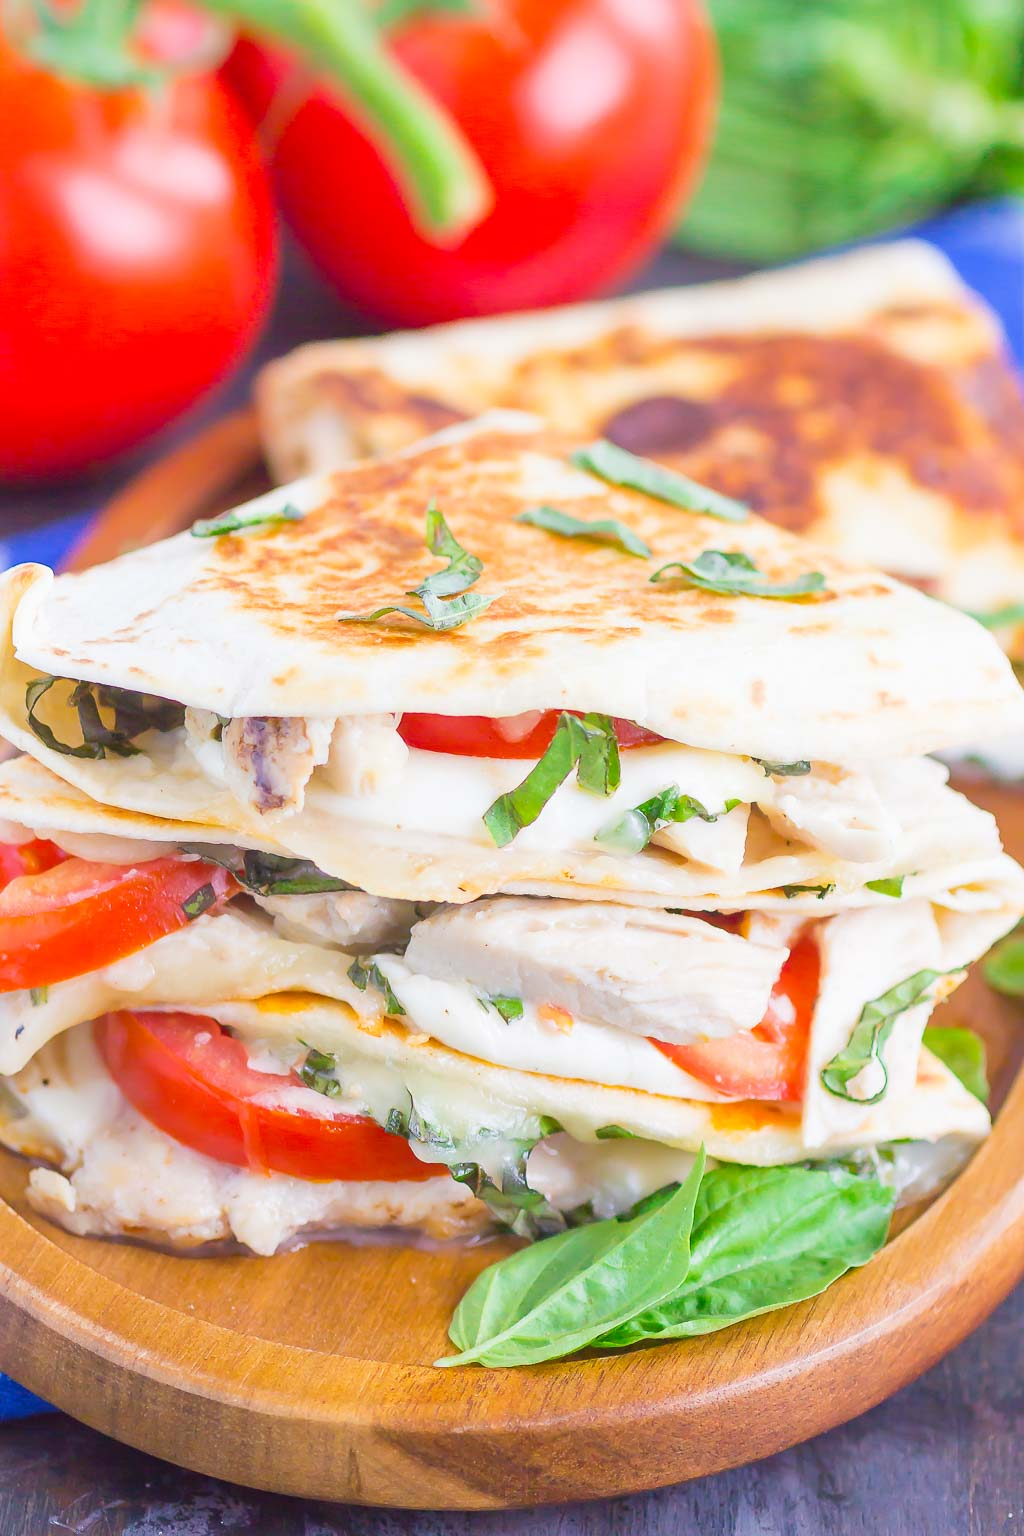 Chicken Caprese Quesadillas are an easy meal that comes together in minutes. With shredded chicken, fresh mozzarella, tomatoes and basil, this dish is kid-friendly and perfect for just about any time! #quesadillas #chicken #chickenquesadilla #caprese #capresequesadilla #chickendinner #dinner #recipe